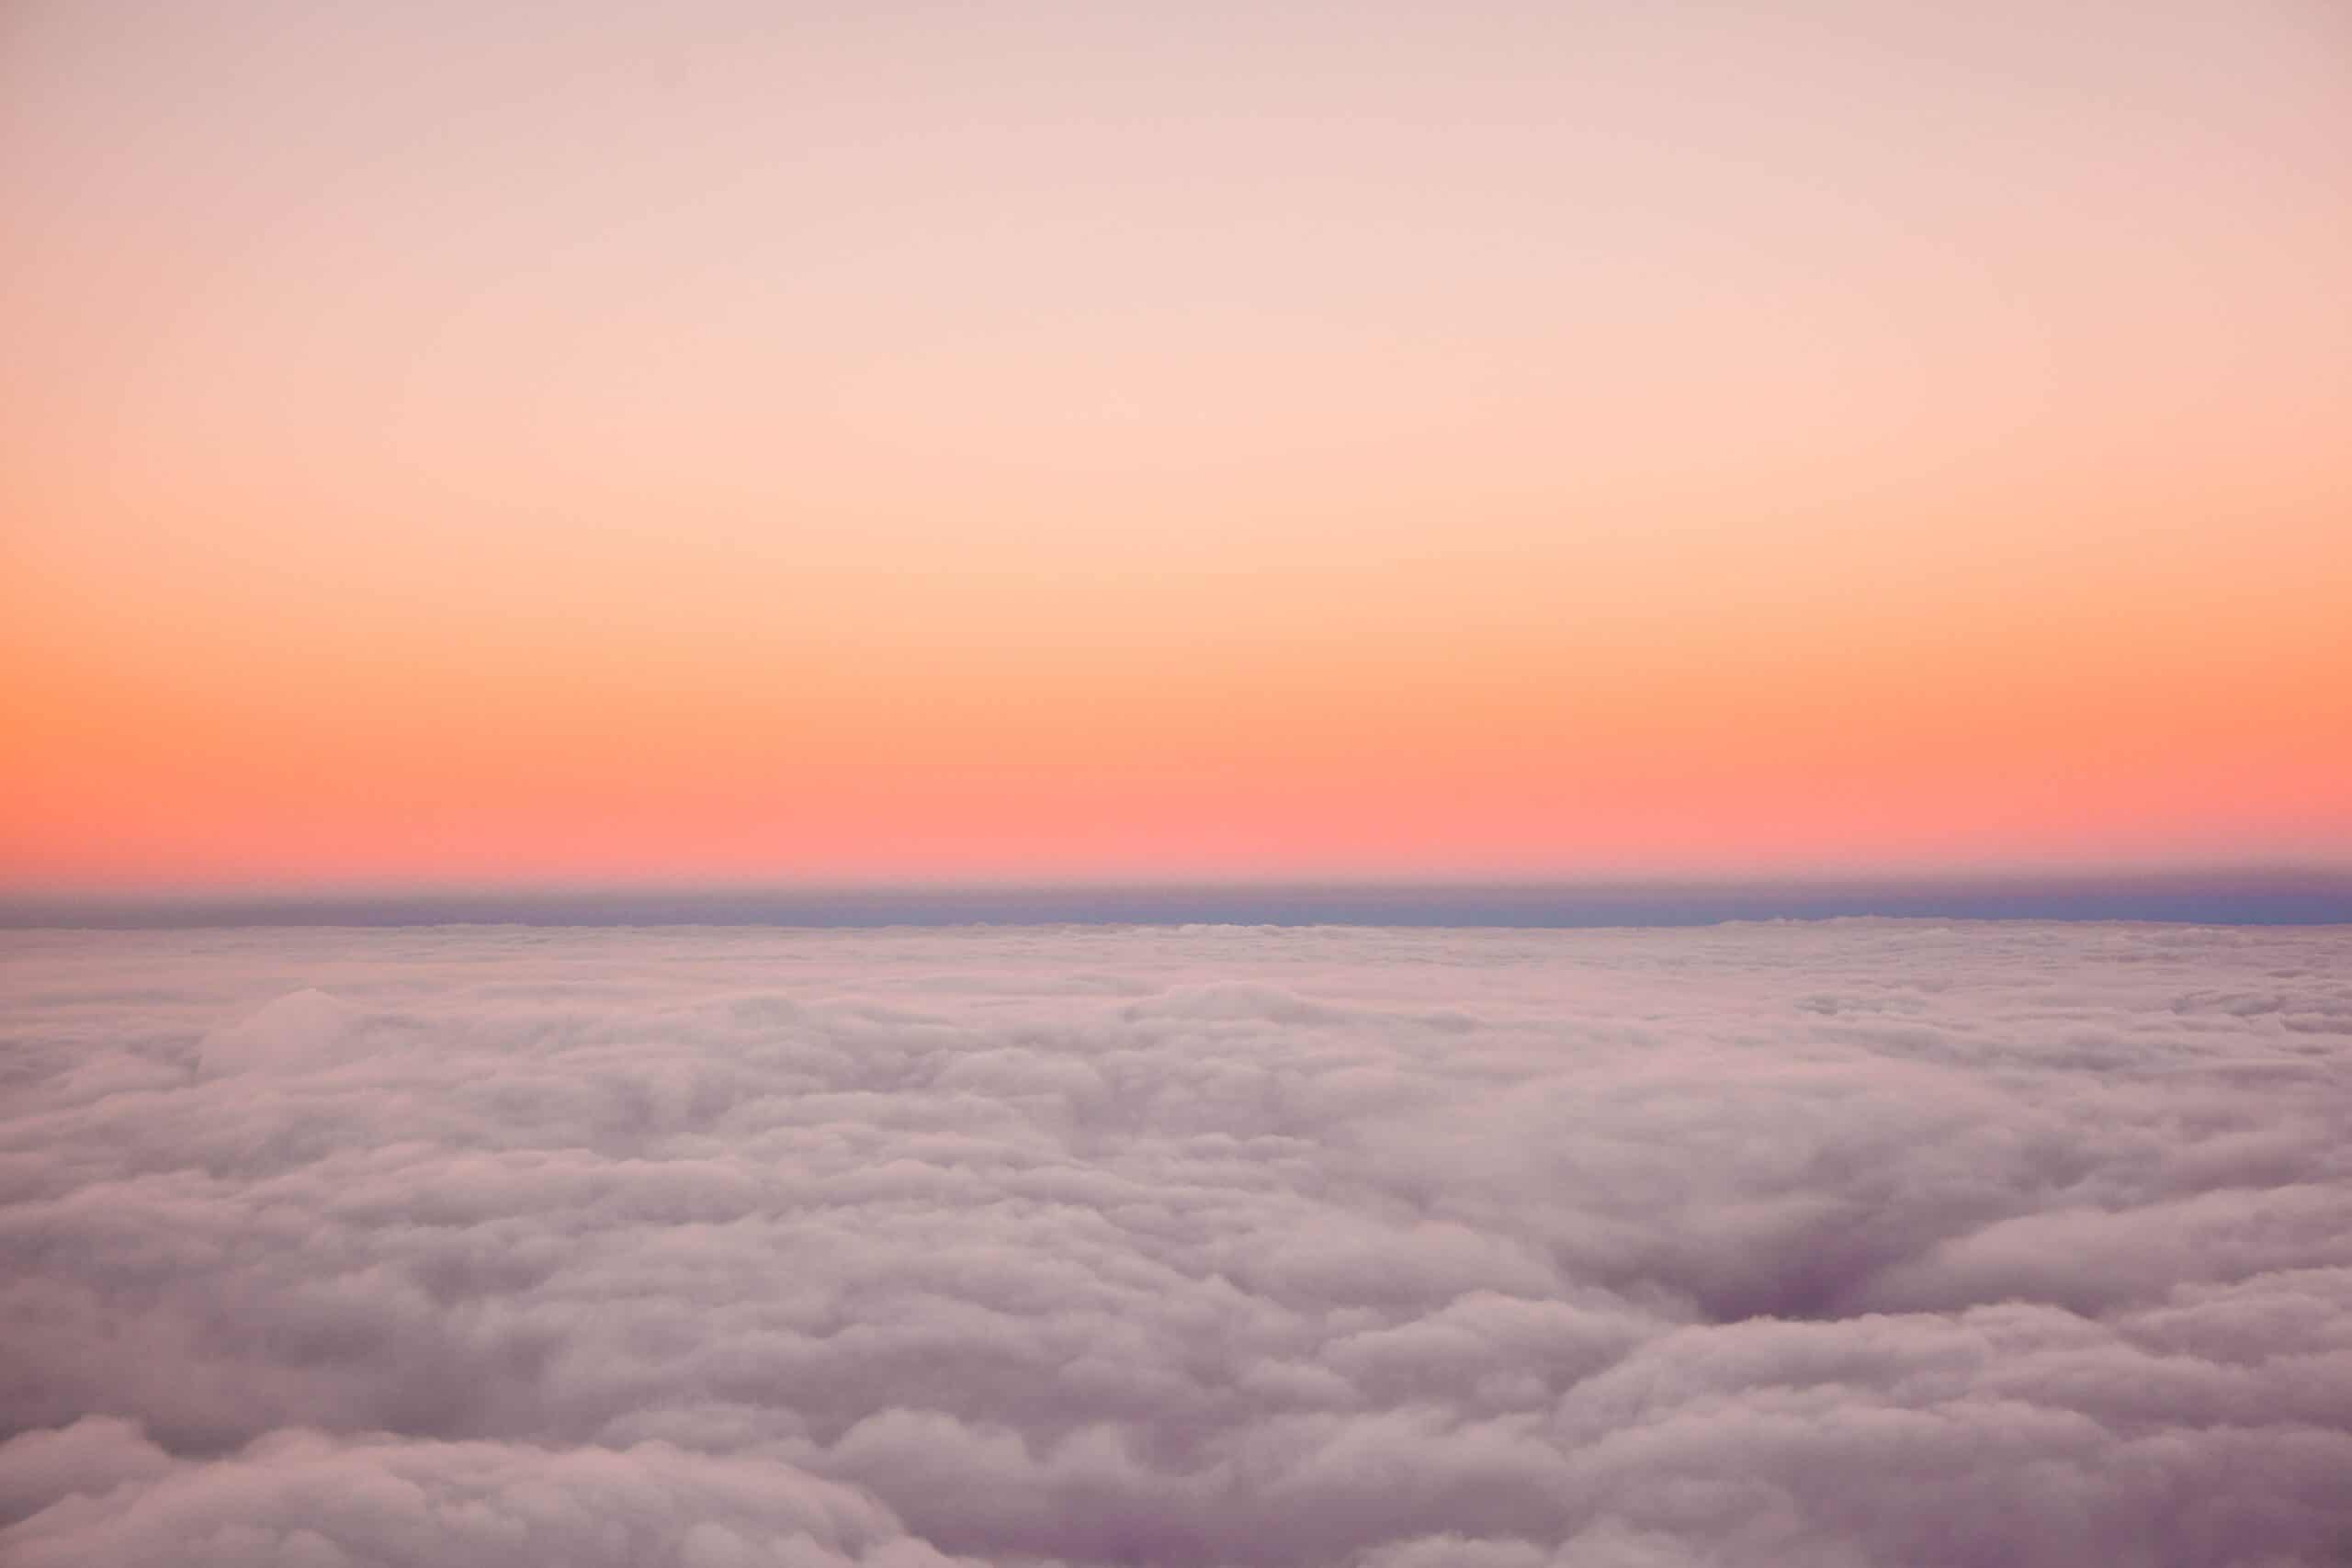 Cloud Cover Significance